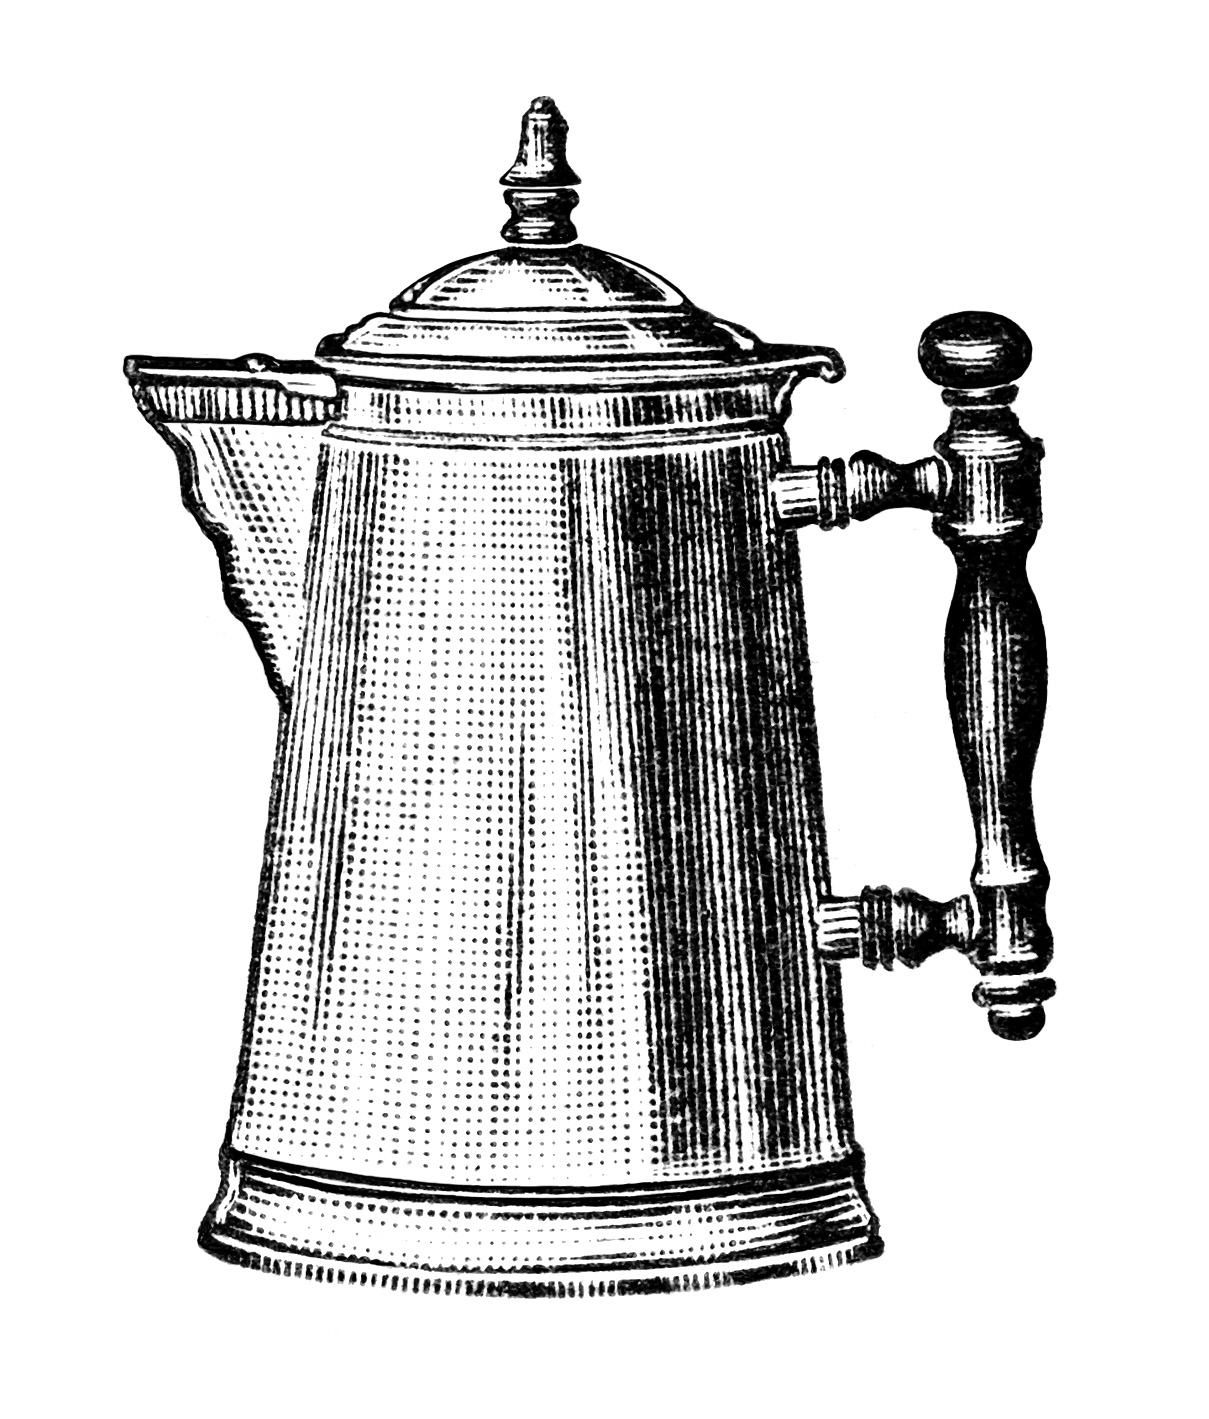 Free Kitchen Catalogs: Free Vintage Image Coffee Pots Clip Art